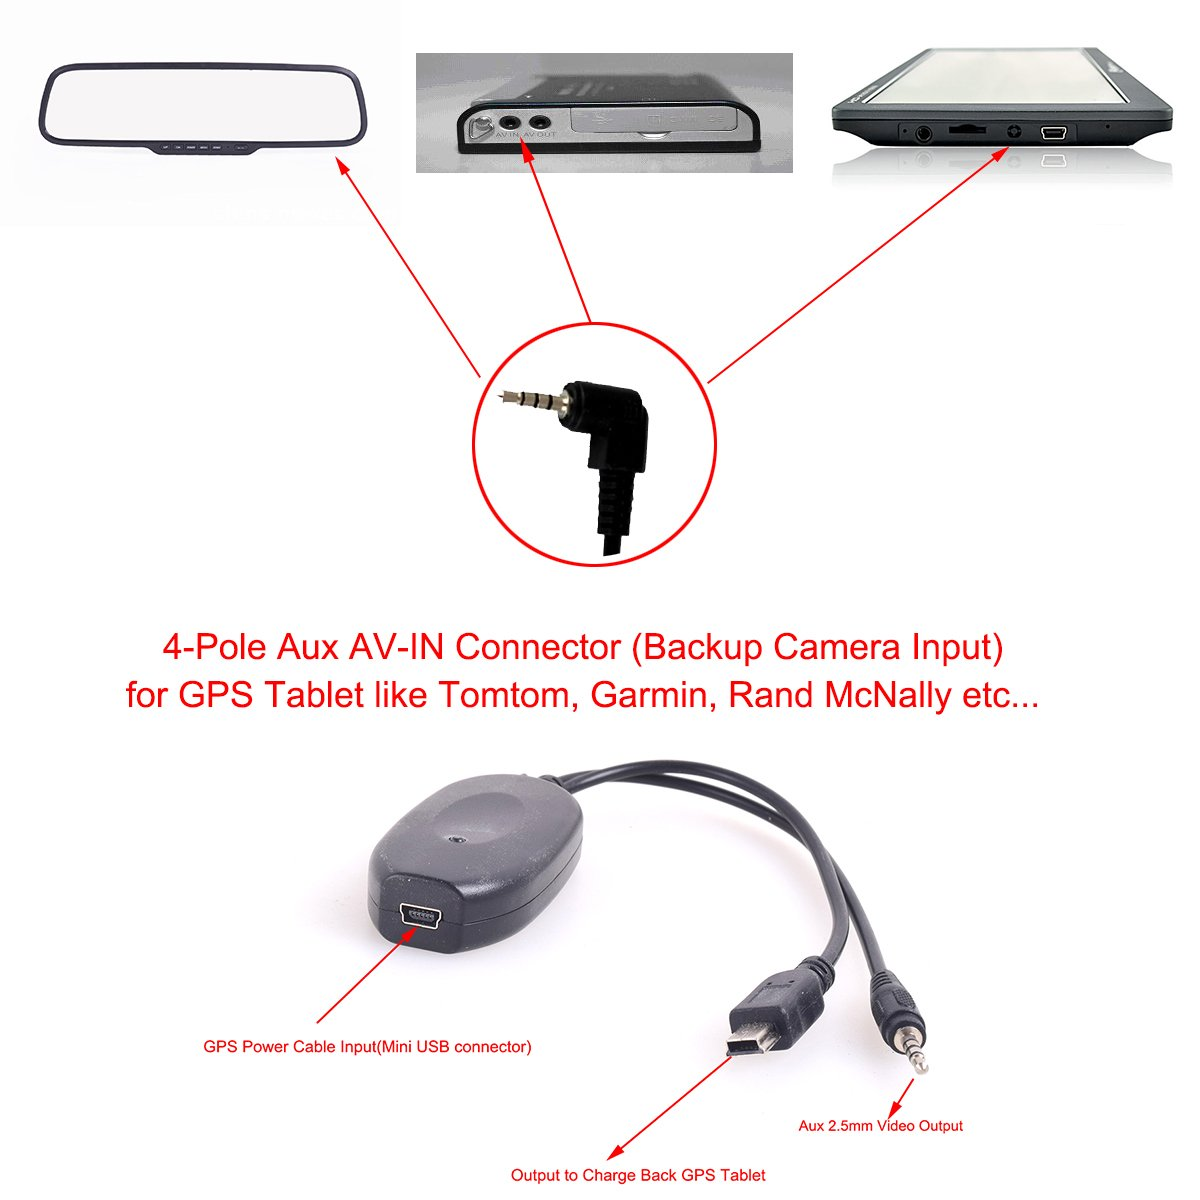 Car 2.4G Wireless Video Cable for Backup Camera to GPS Tablet Aux 2.5mm AV-IN